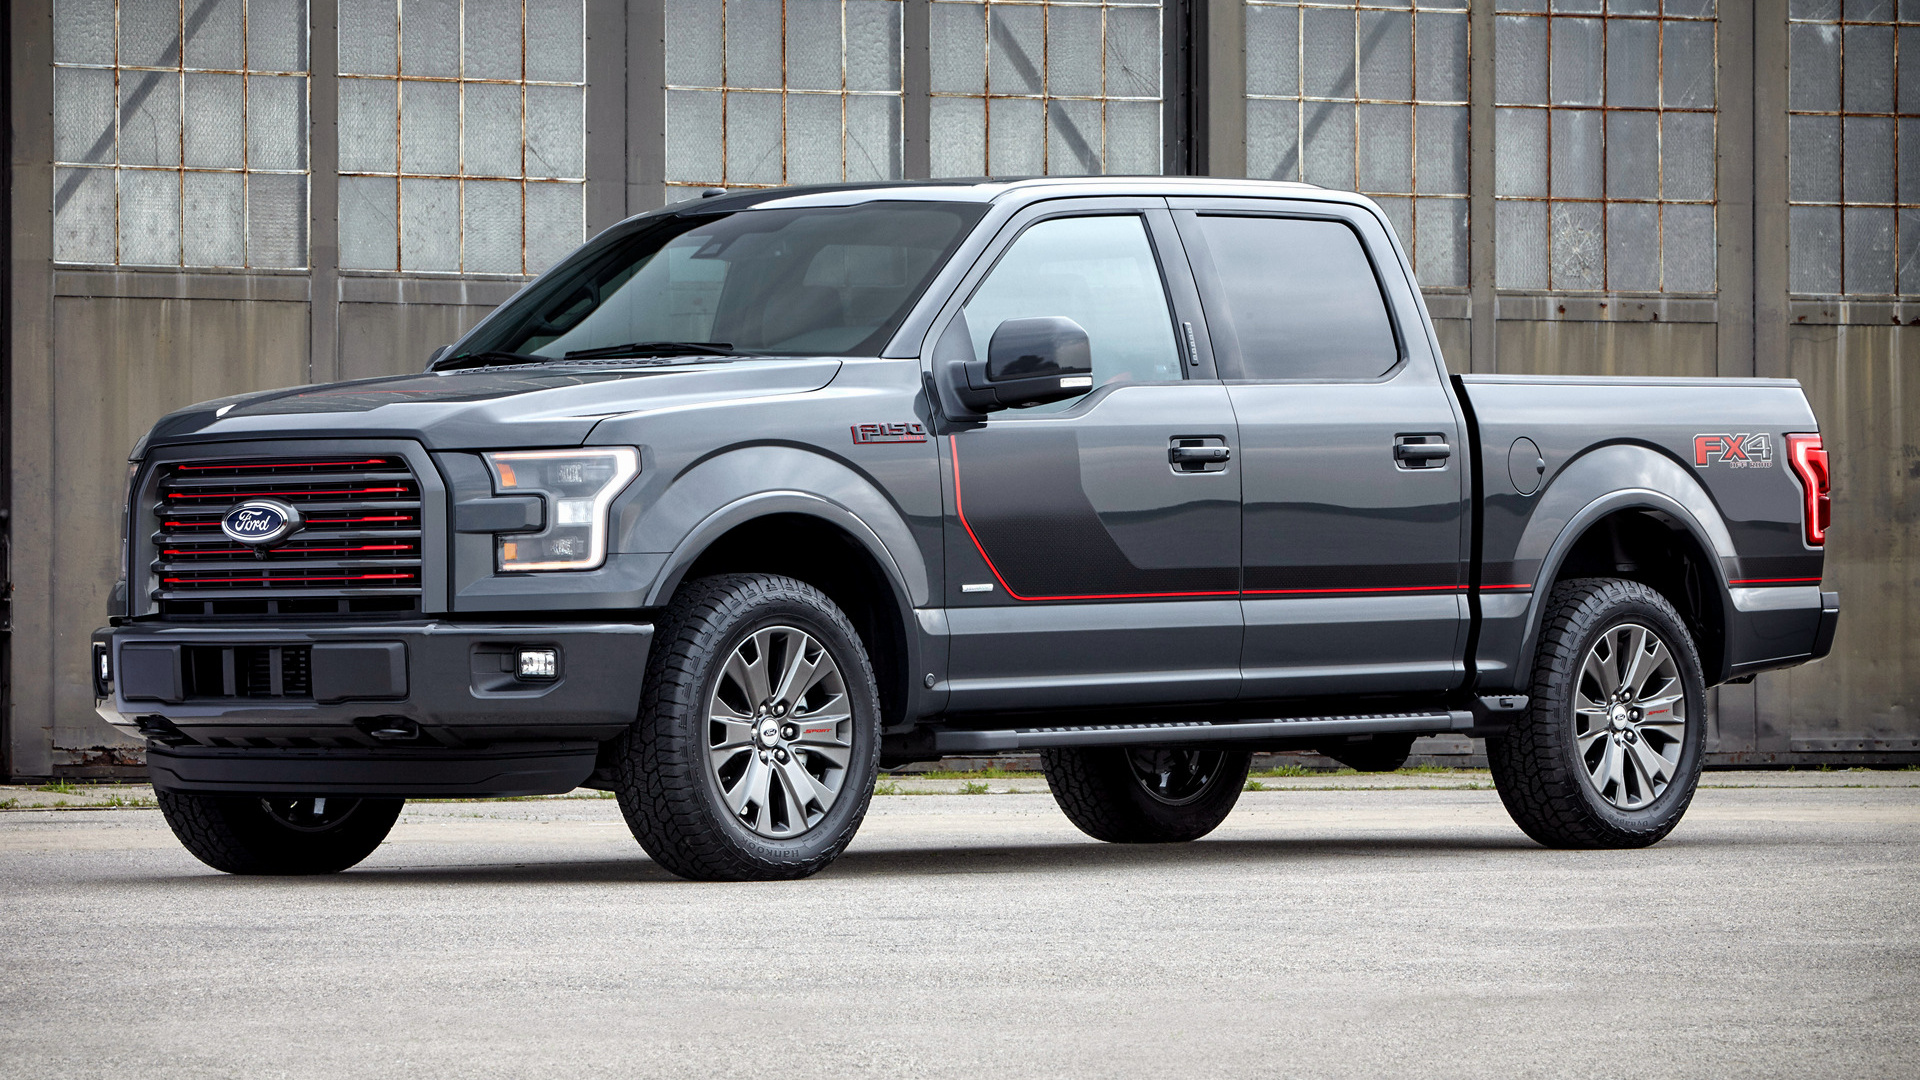 Ford F 150 Lariat FX4 SuperCrew Appearance Package 2016 Wallpapers 1920x1080